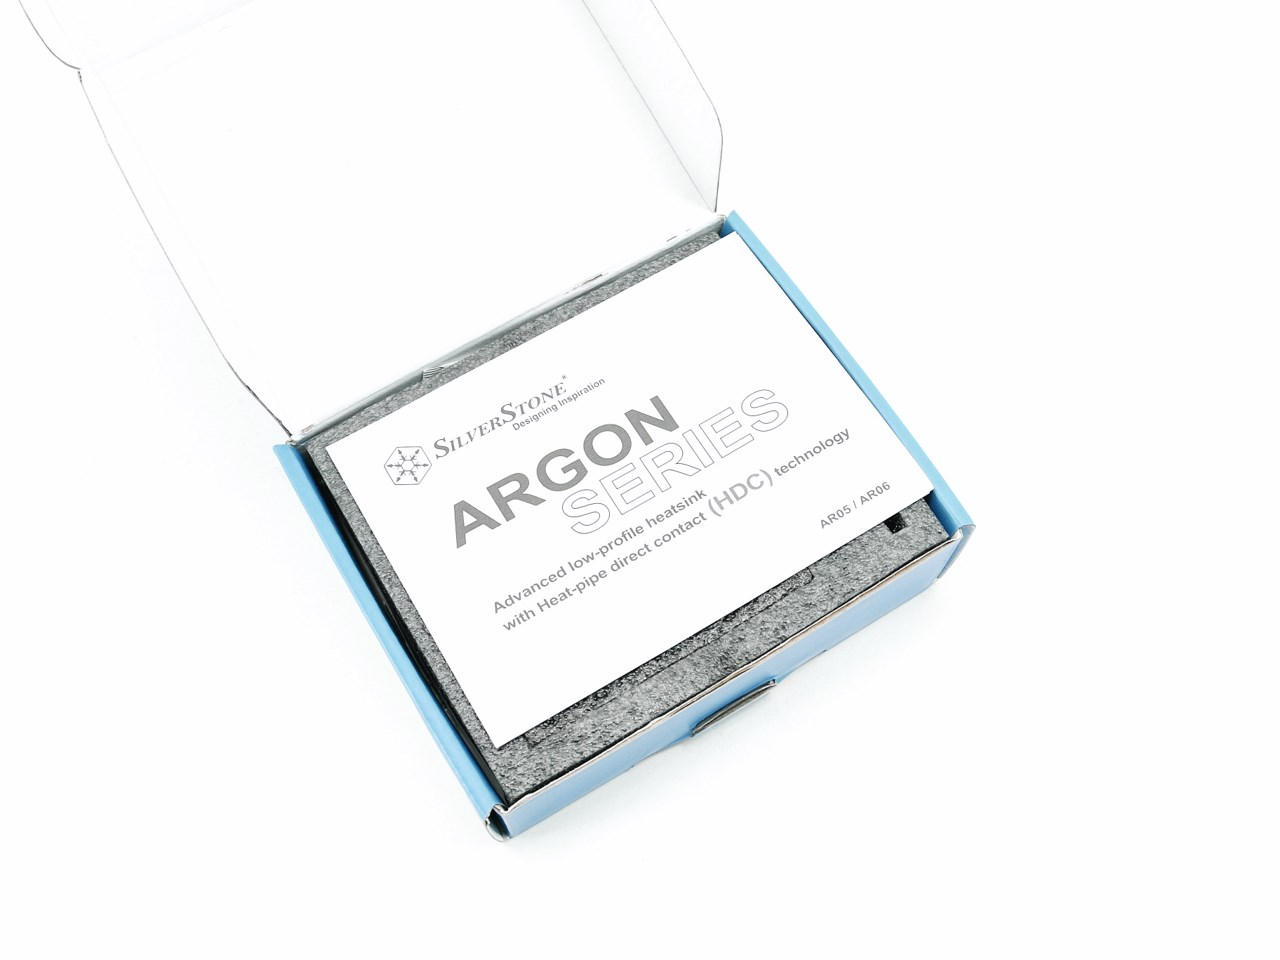 Silverstone Argon Ar05 Low Profile Cpu Cooler Review